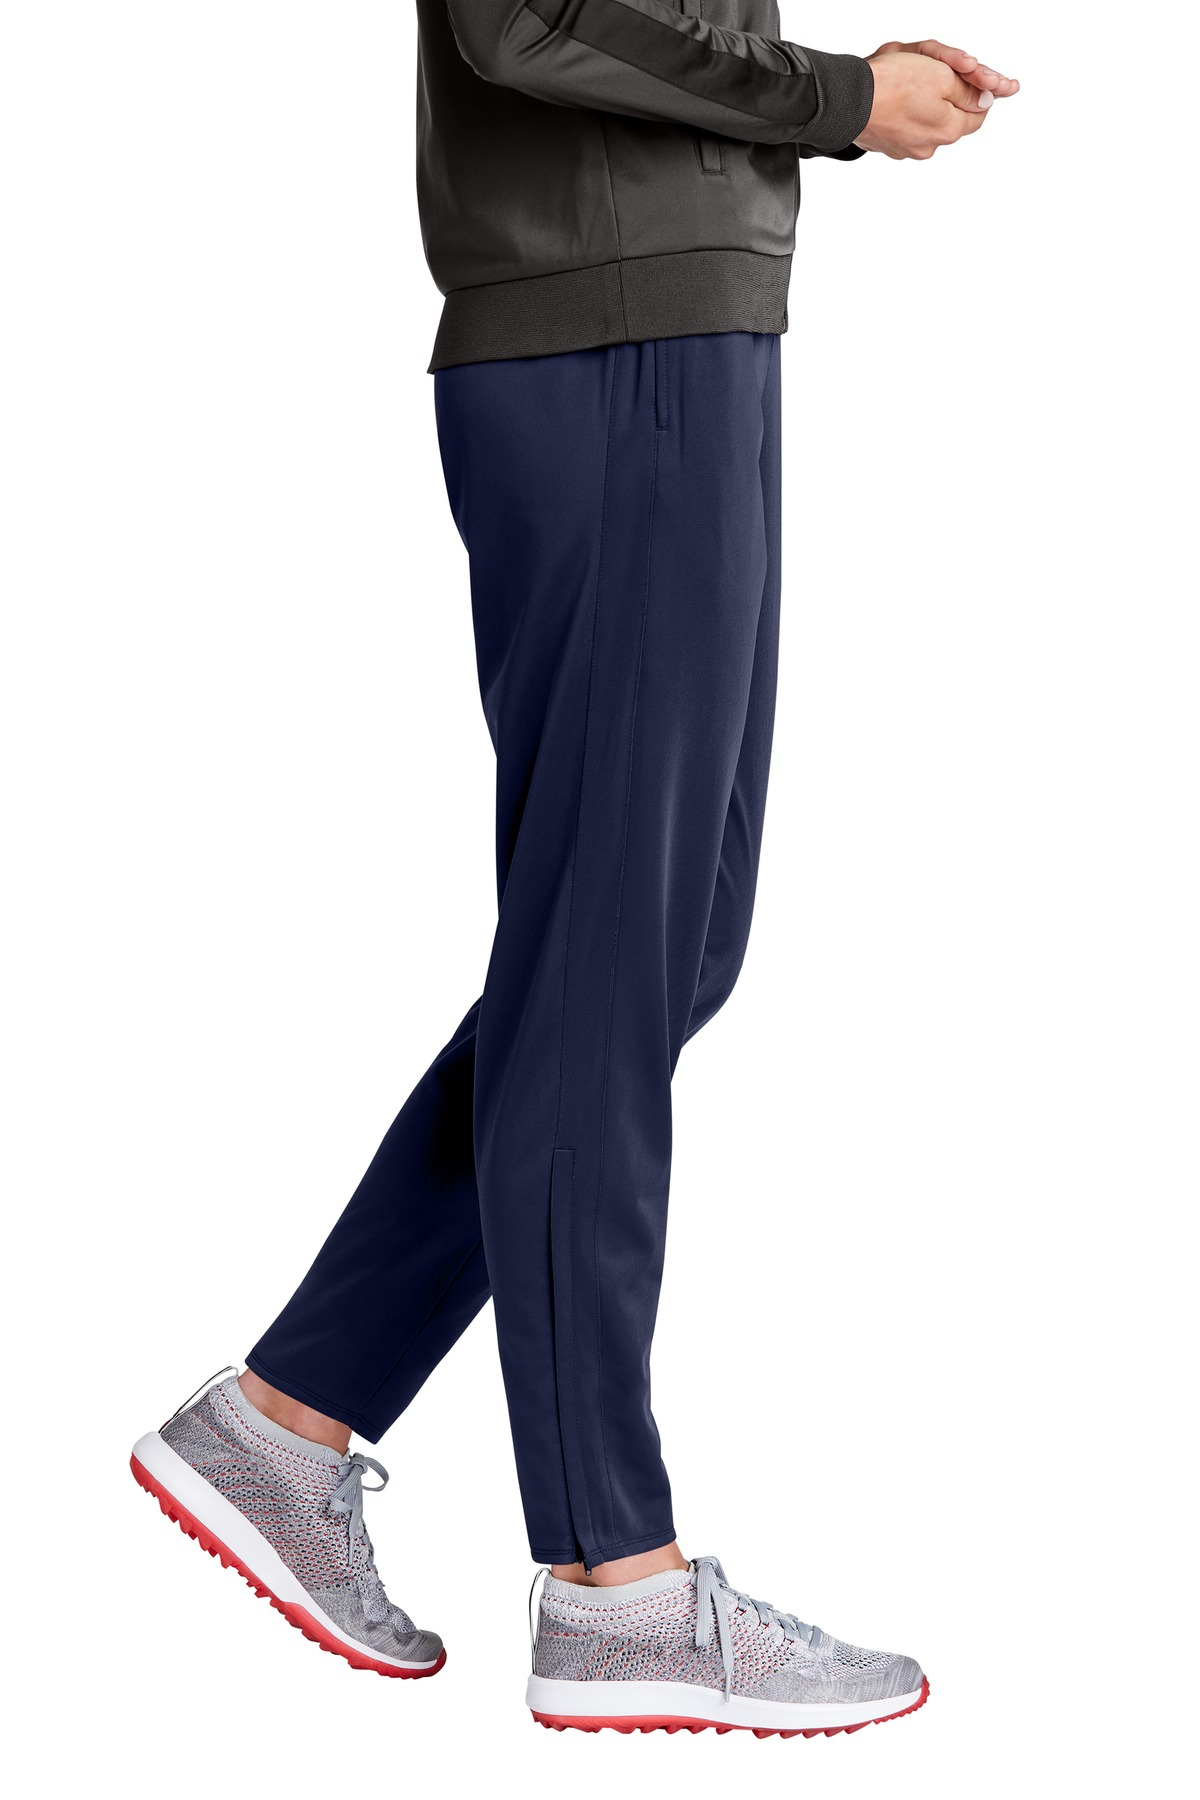 Sport Tek Lpst95 True Navy Ladies Tricot Track Jogger Yes available at sportek retail store: https www jiffyshirts com sporttek lpst95 html ac true navy